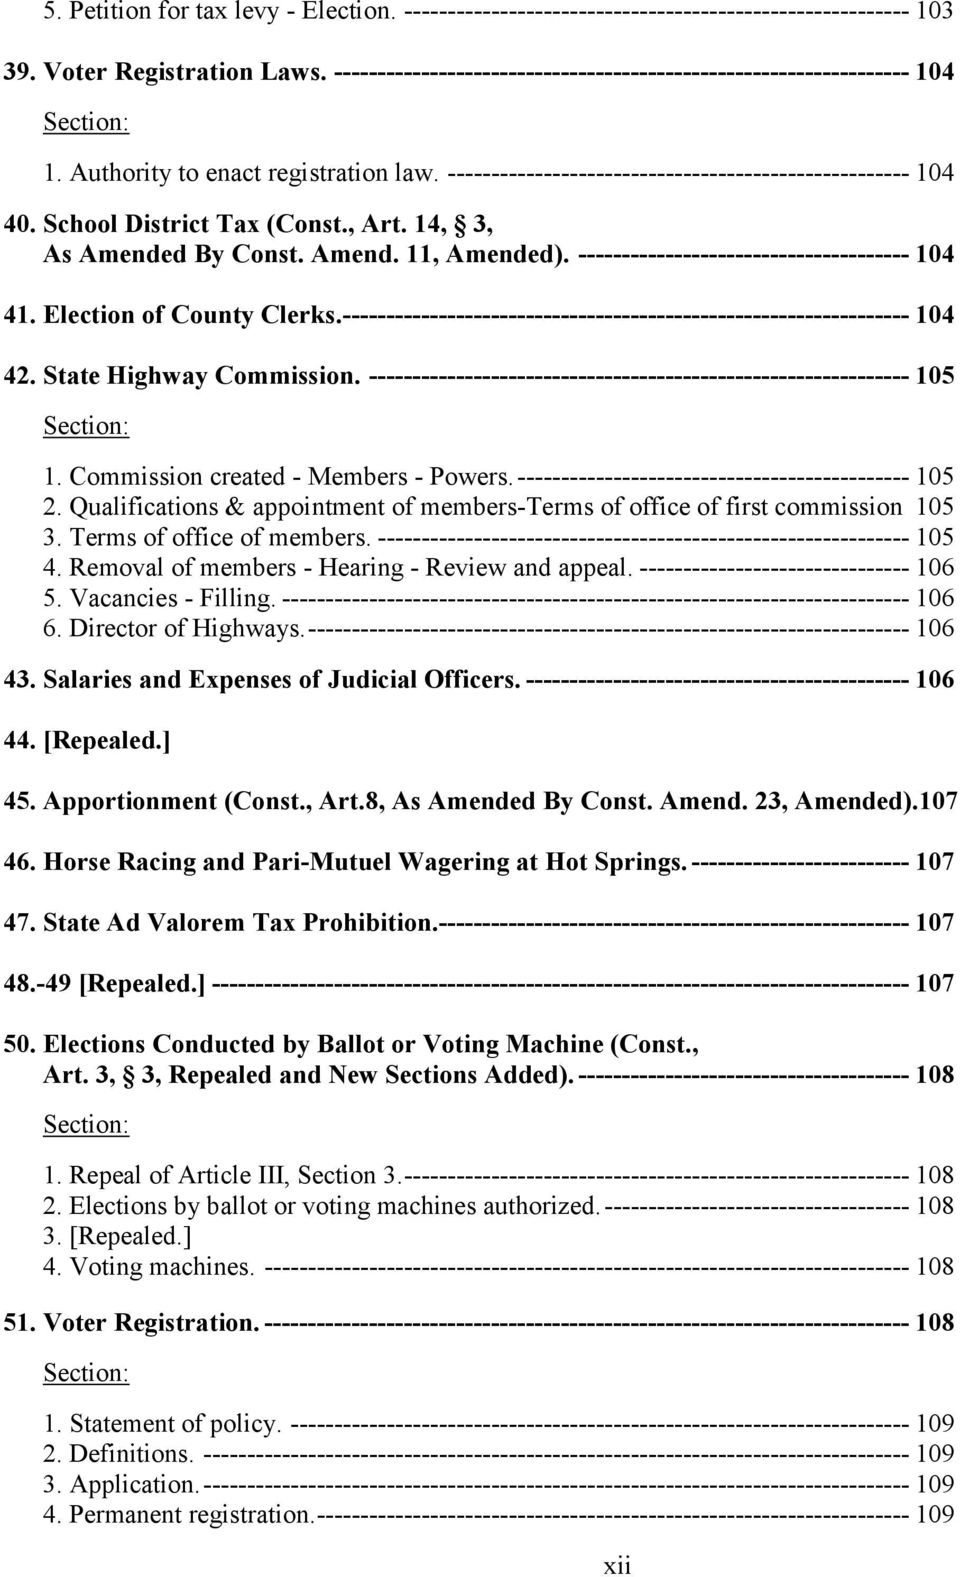 , Art. 14, 3, As Amended By Const. Amend. 11, Amended). -------------------------------------- 104 41. Election of County Clerks.